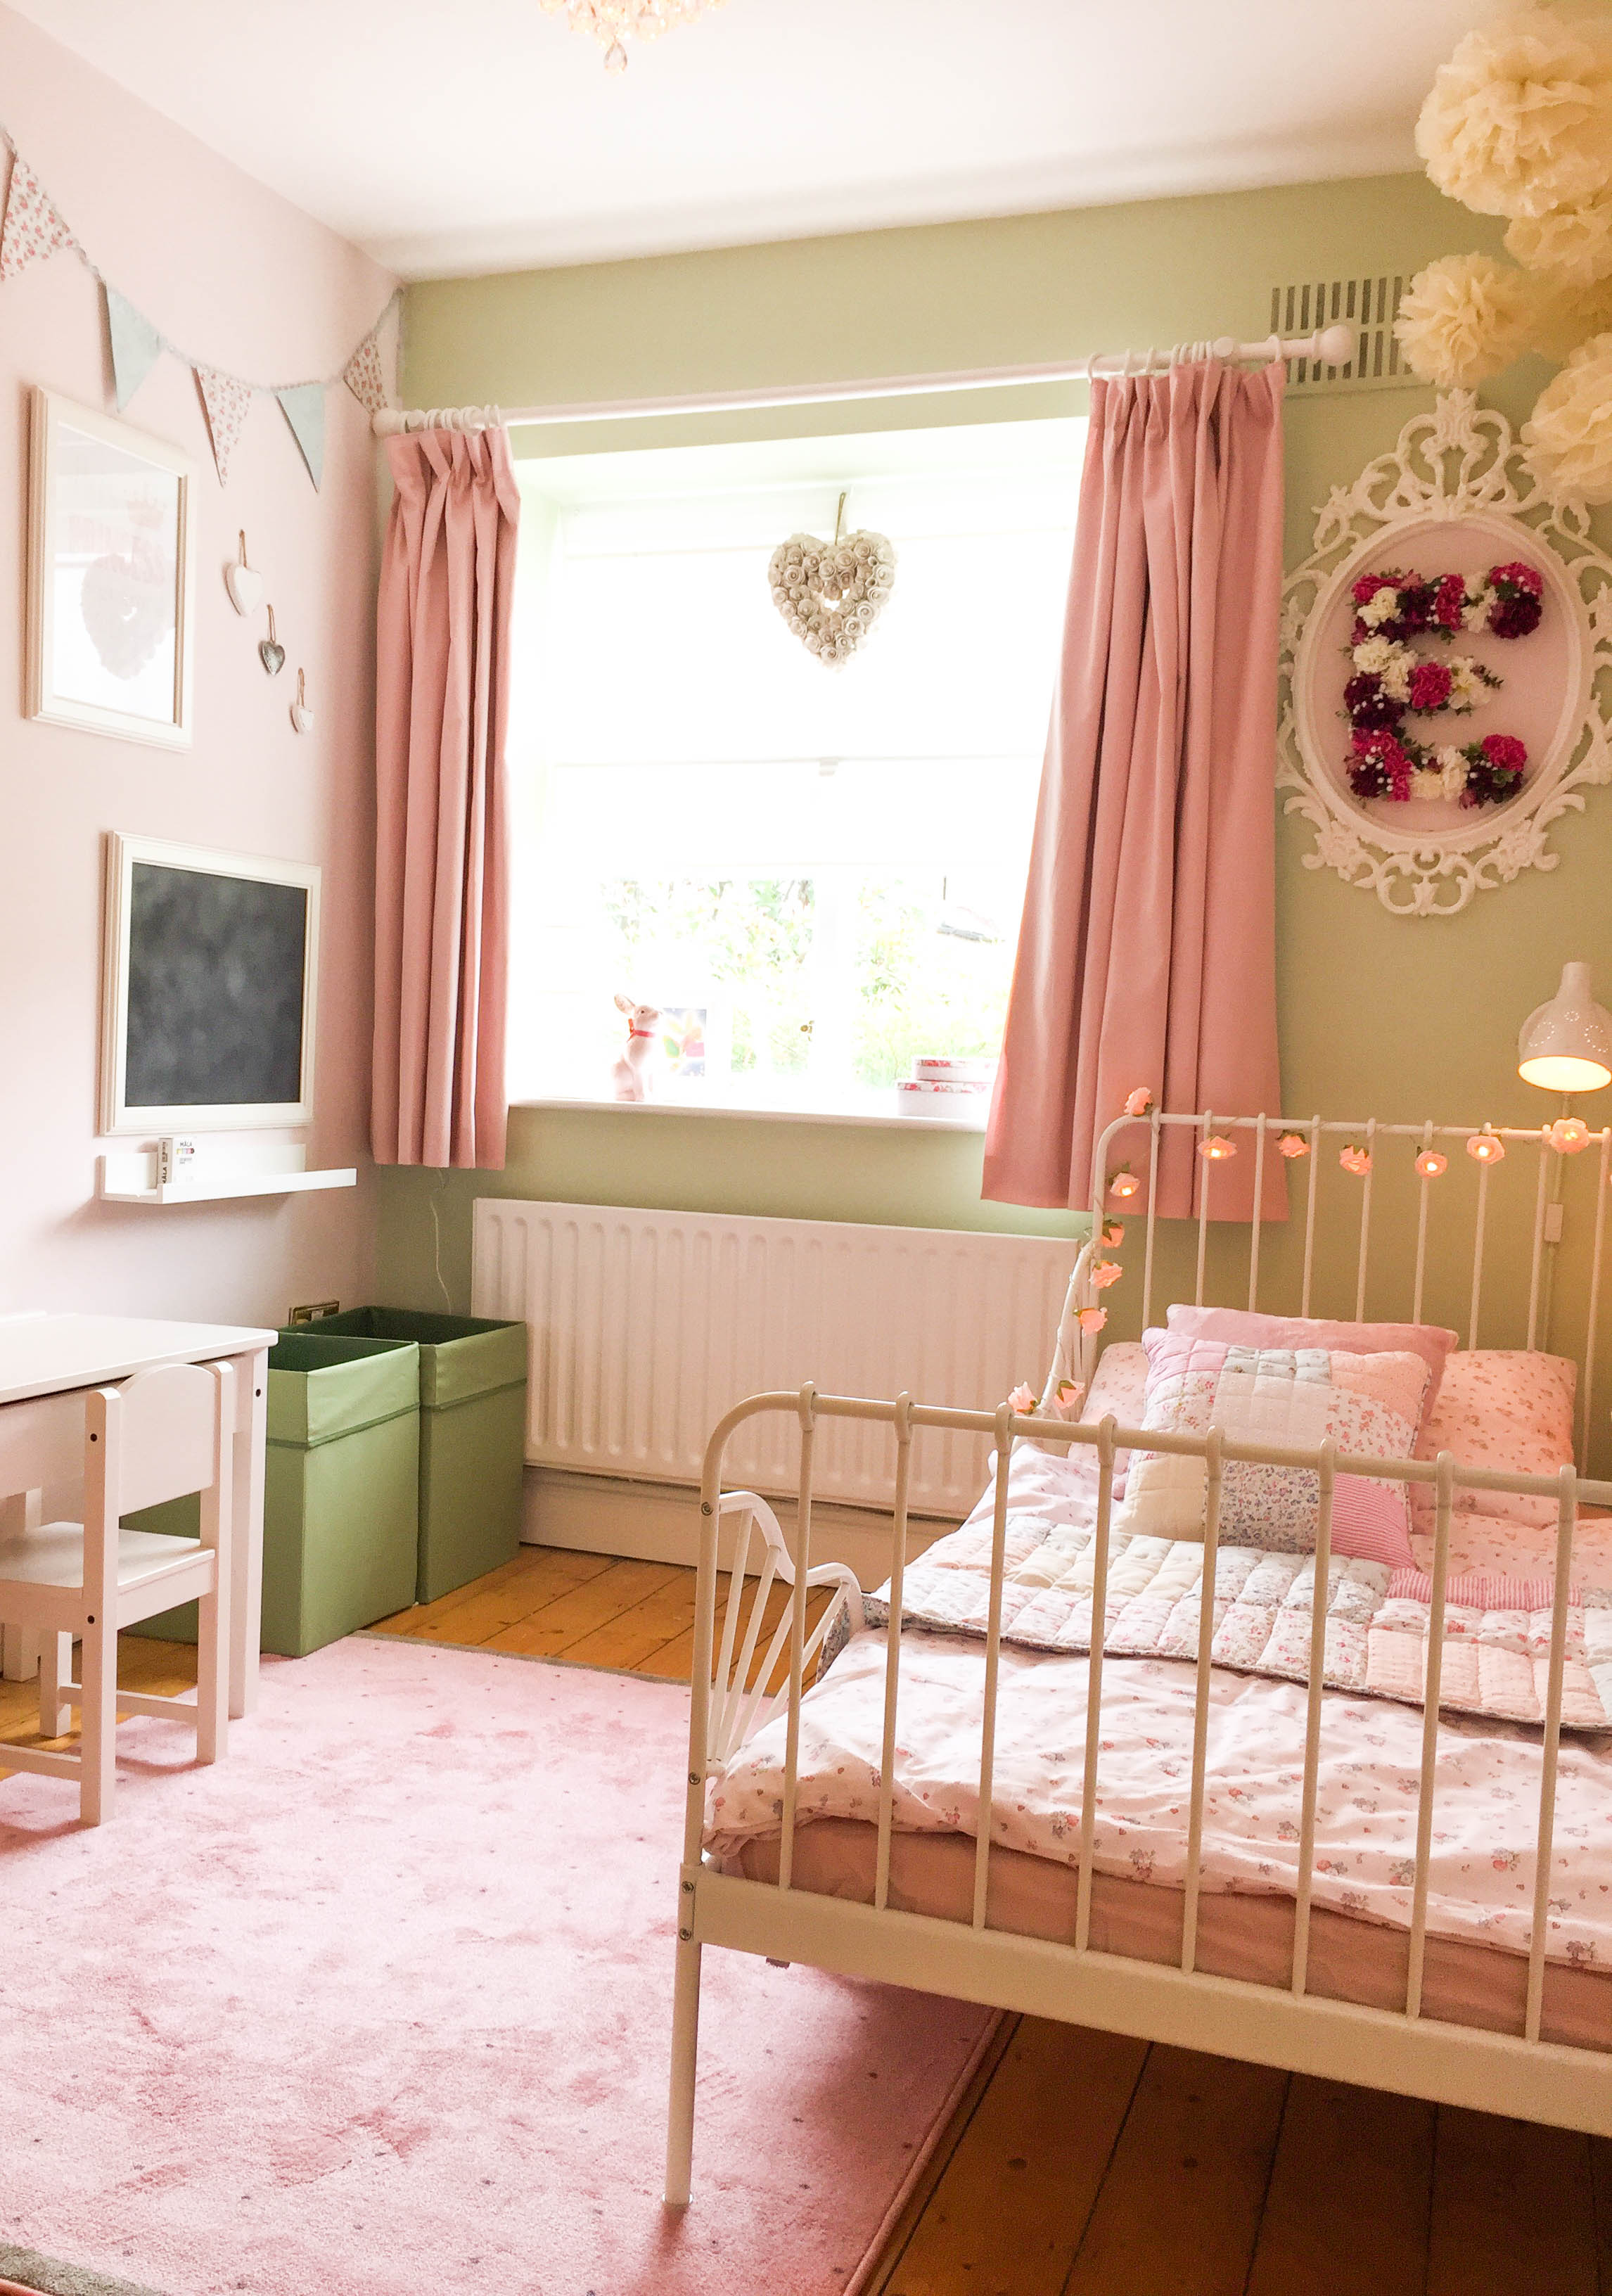 Girls bedroom design - Ballsbridge (after photo)